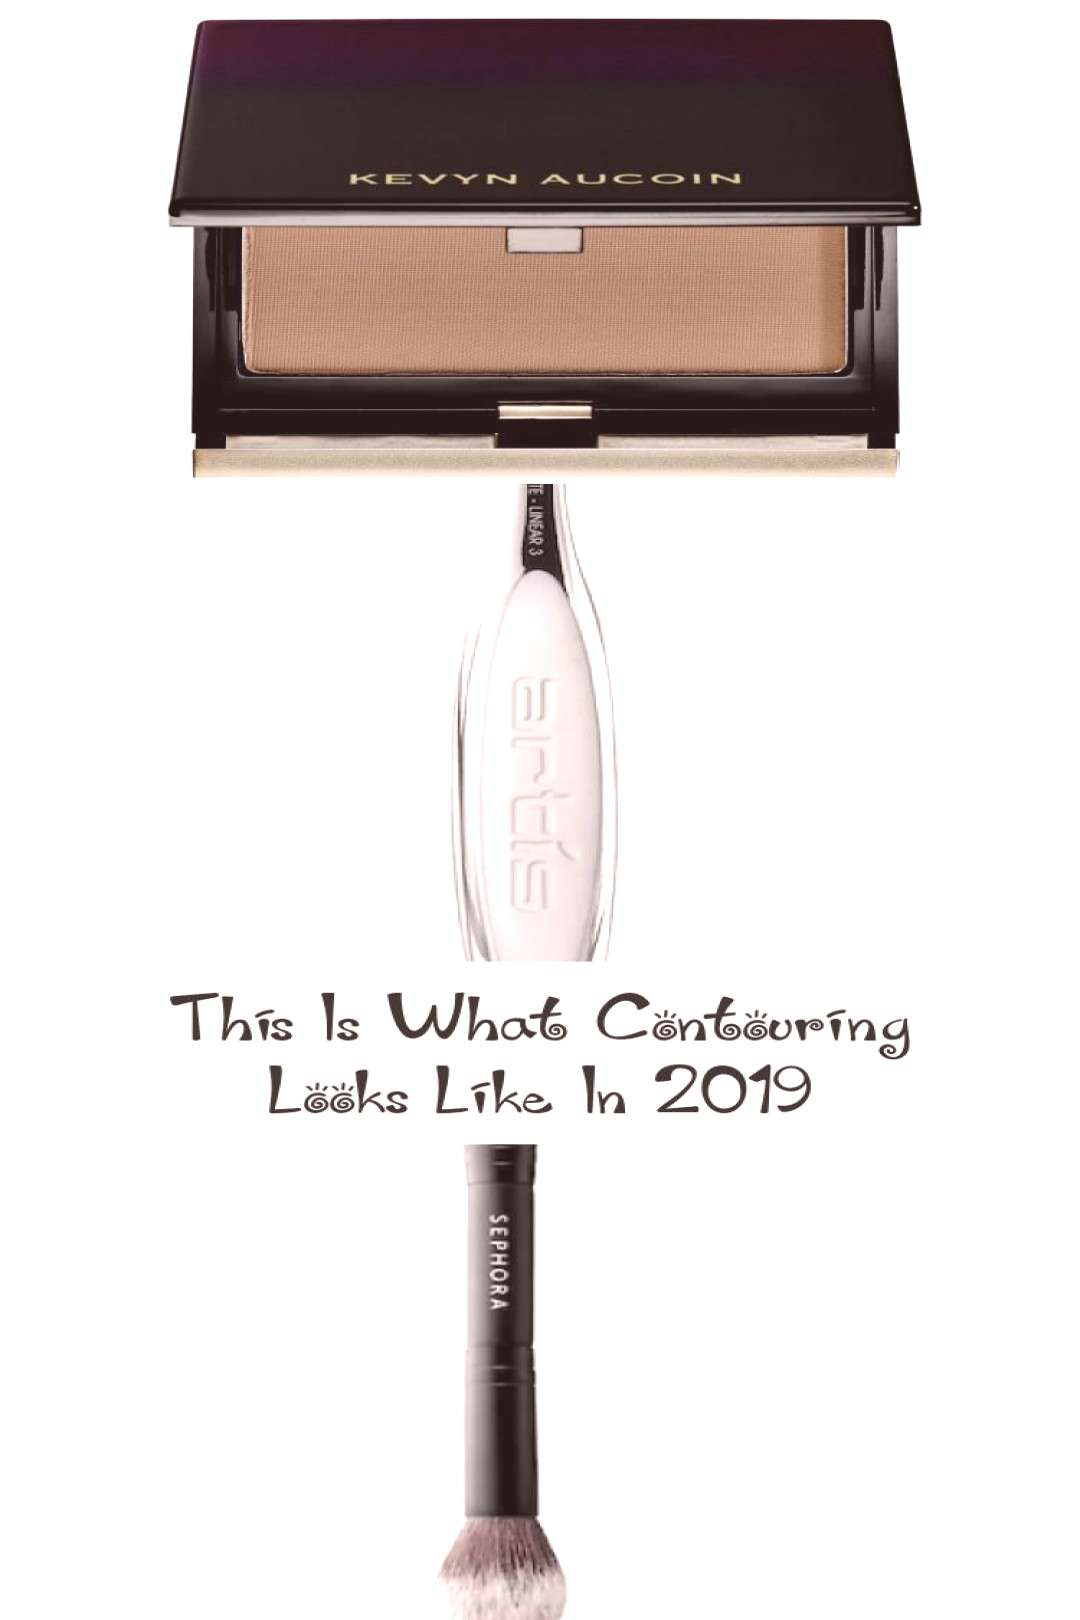 This Is What Contouring Looks Like In 2019 - Best Makeup#contouring